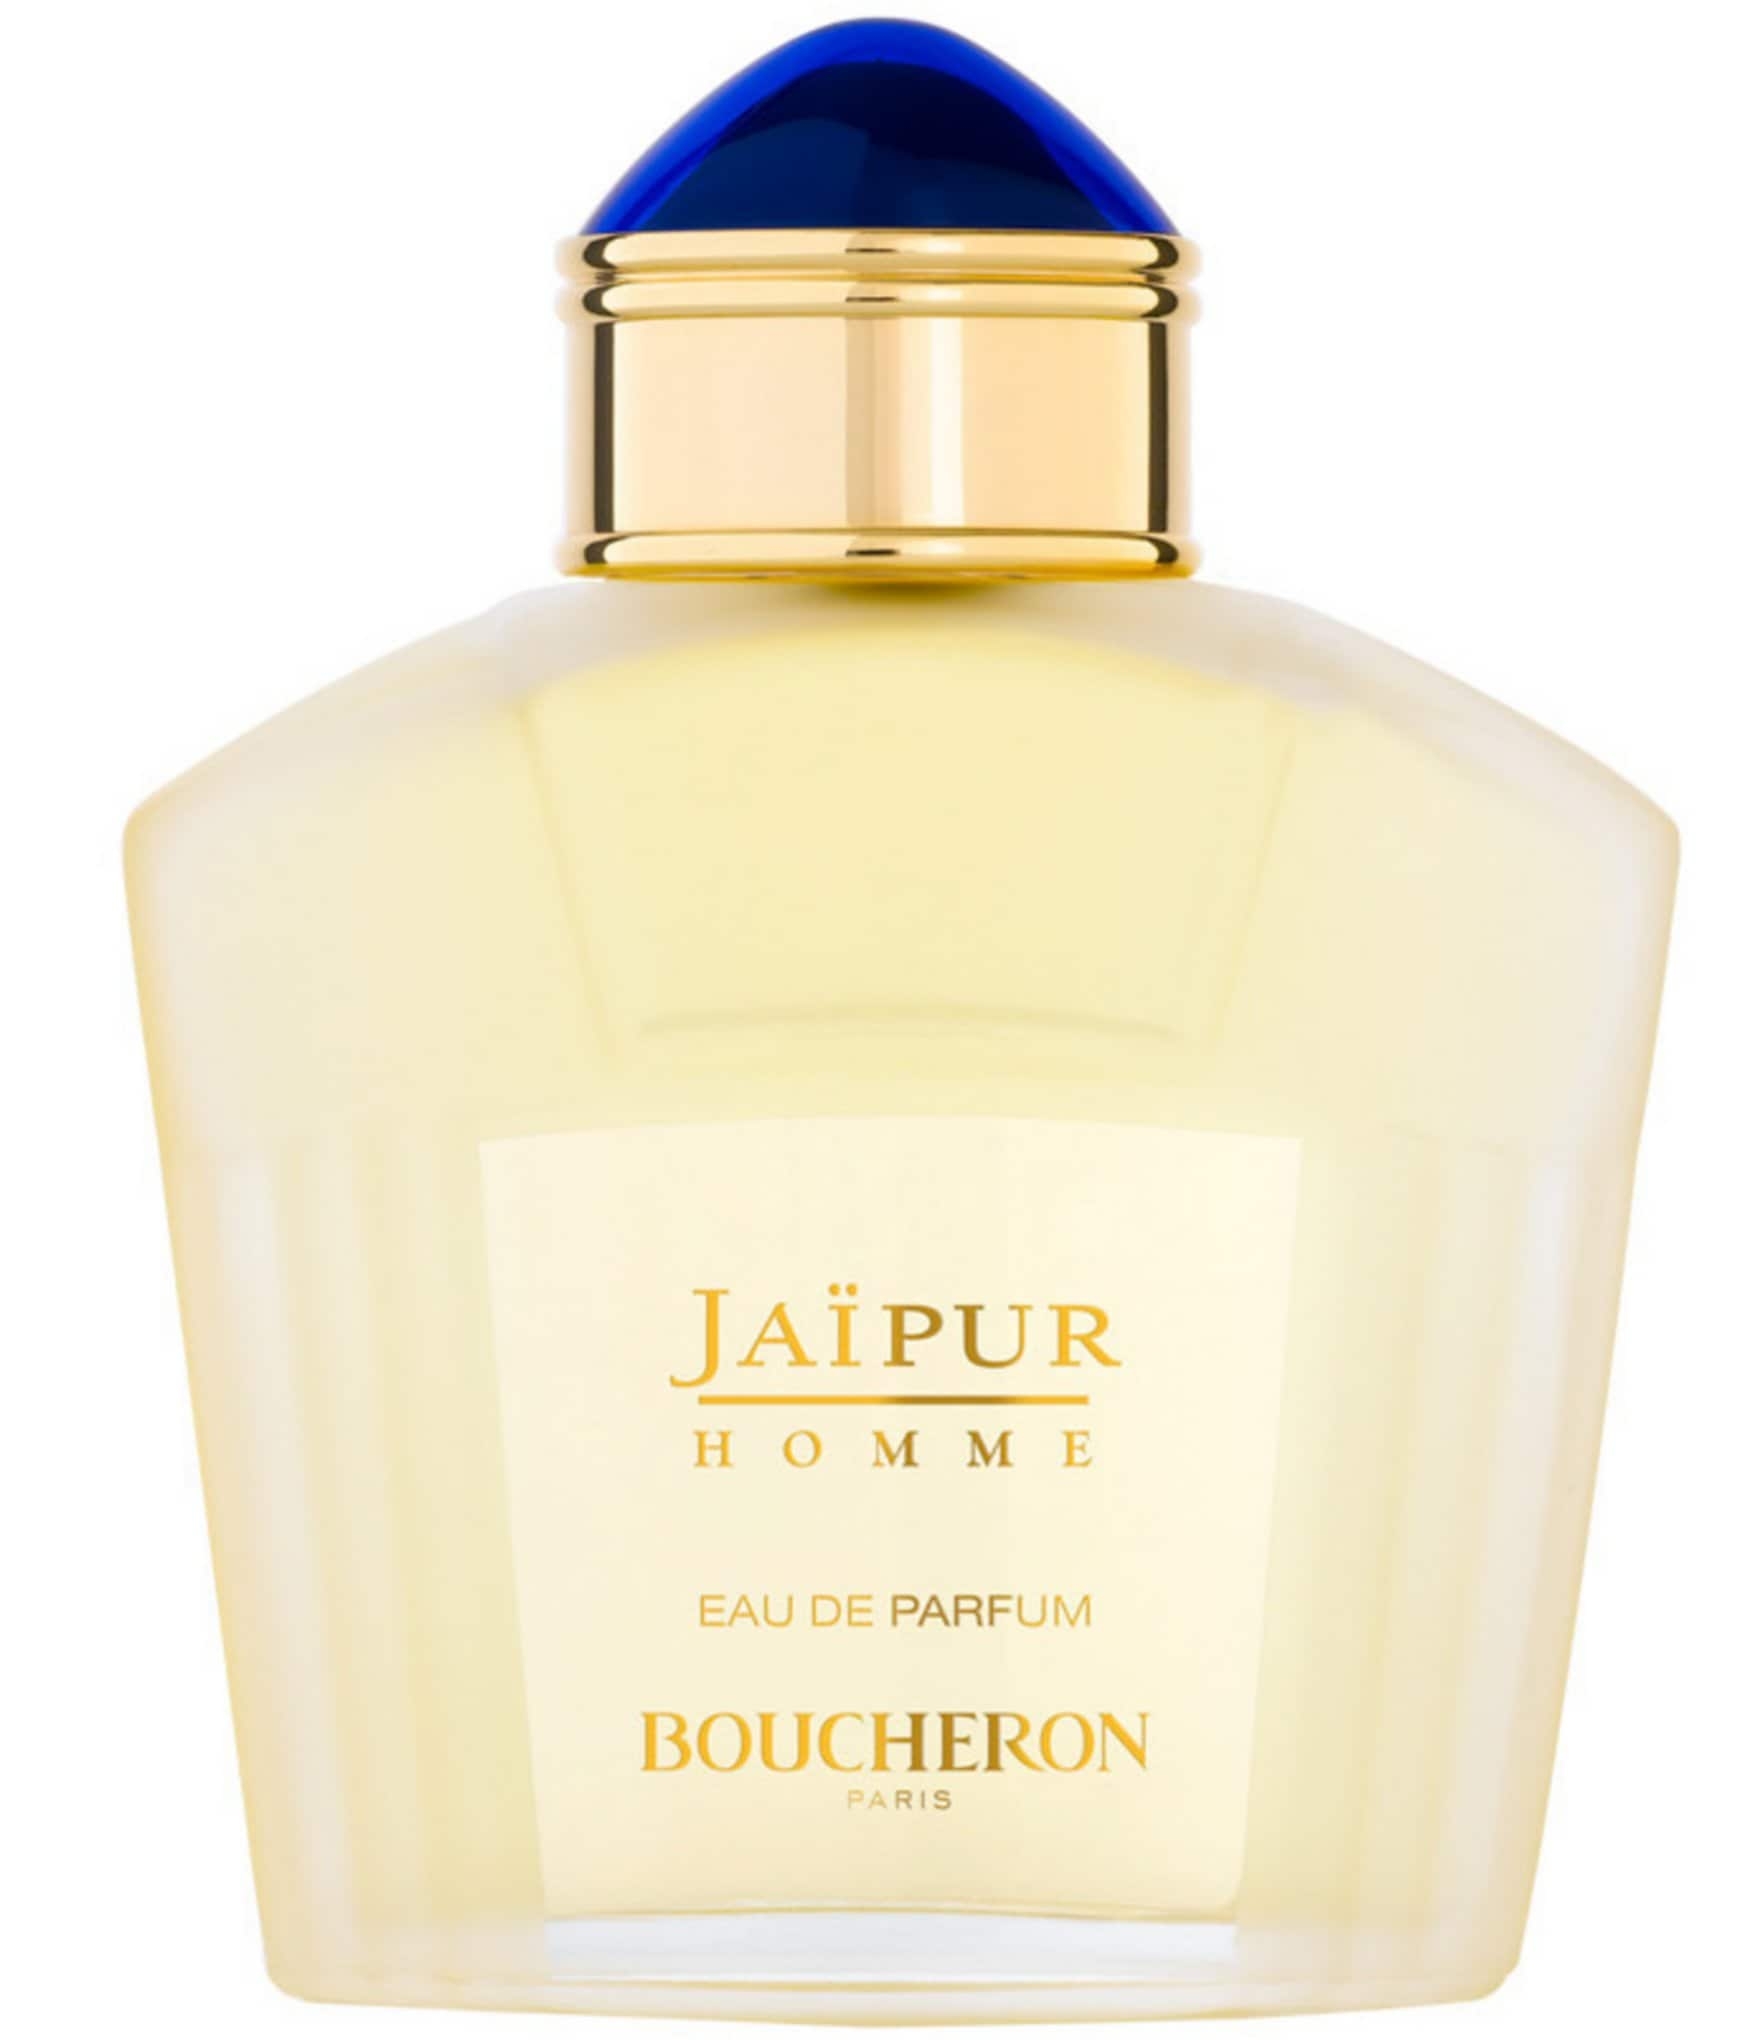 boucheron jaipur homme eau de parfum spray dillards. Black Bedroom Furniture Sets. Home Design Ideas